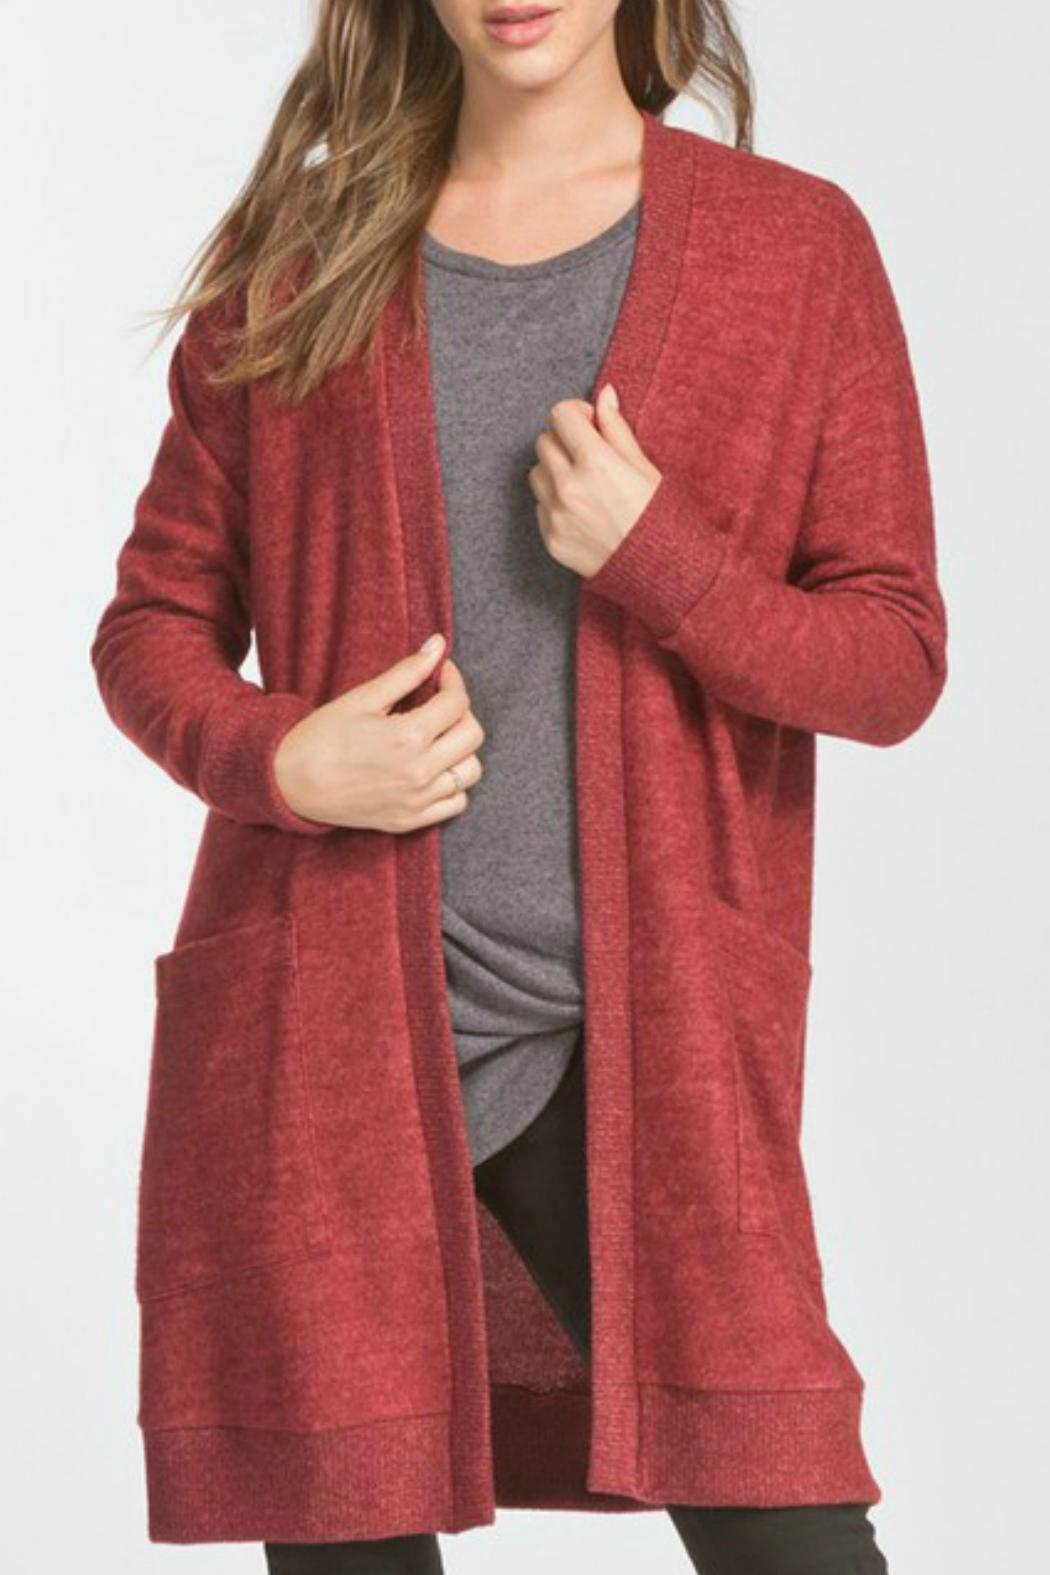 Cherish Naya Burgundy Cardigan - Main Image